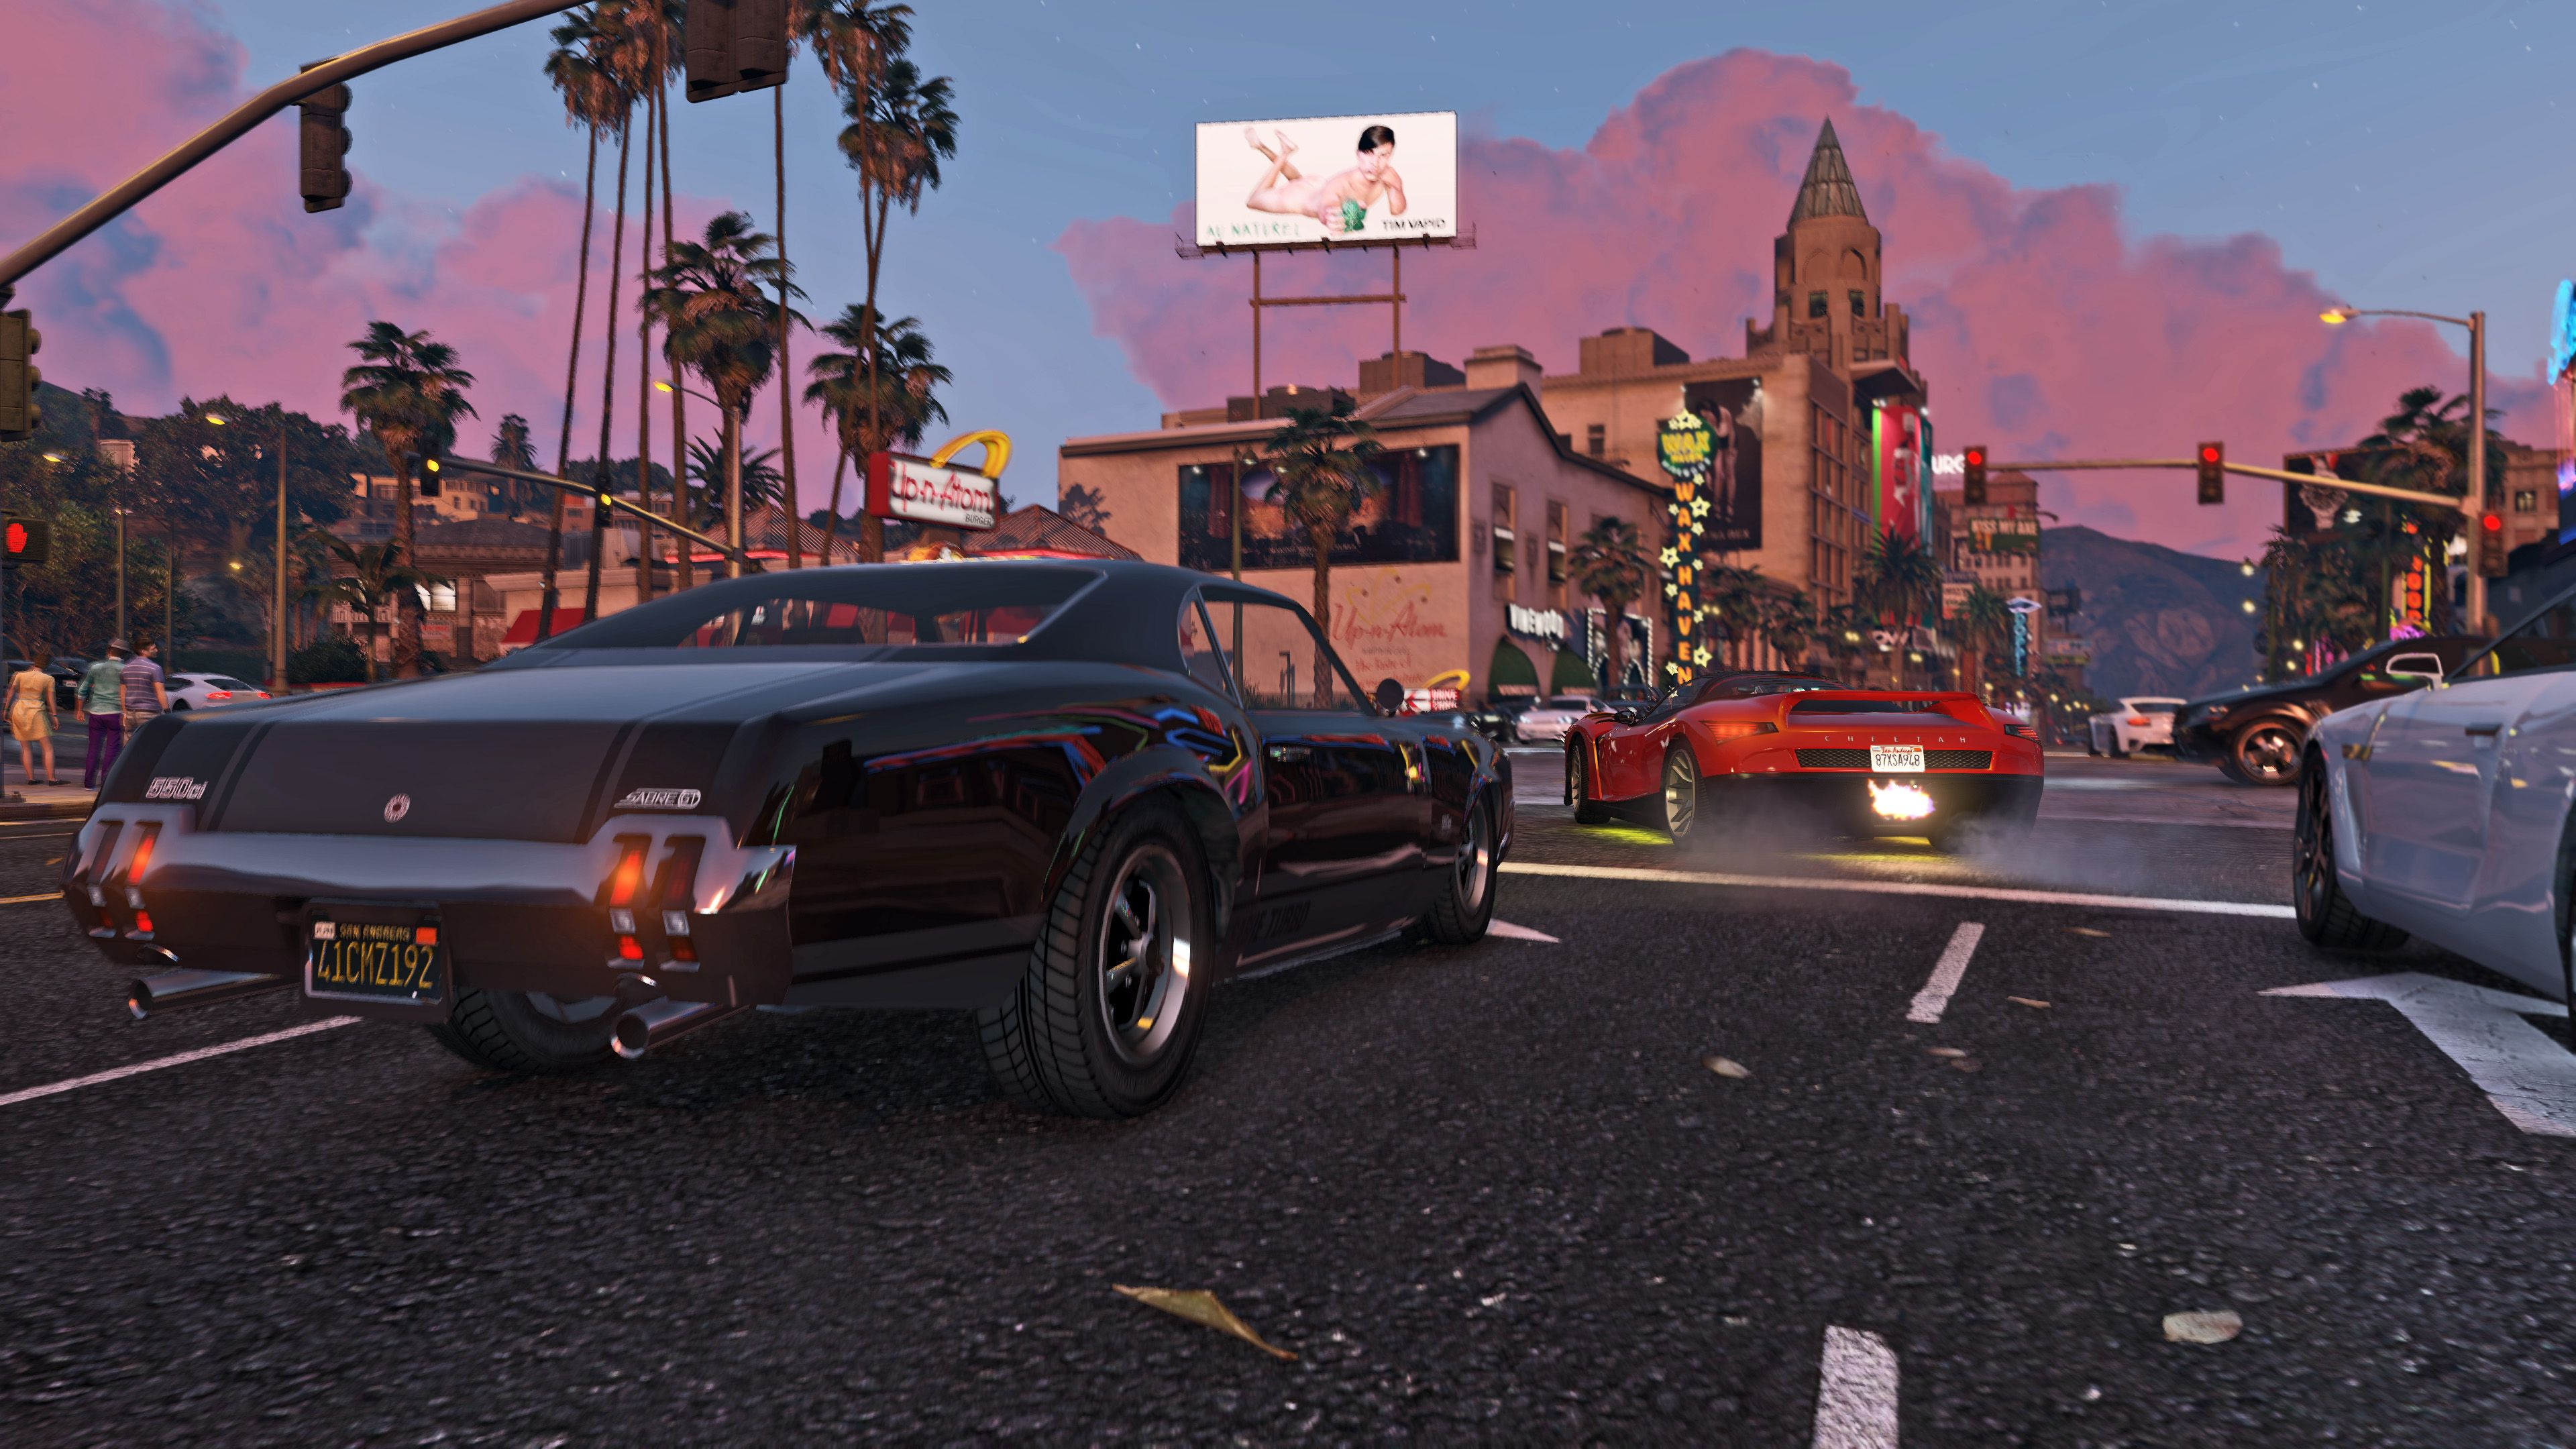 Grand Theft Auto V may already be out for consoles but its PC launch is still awaited so Rockstar has graciously decided to scatter several screenshots